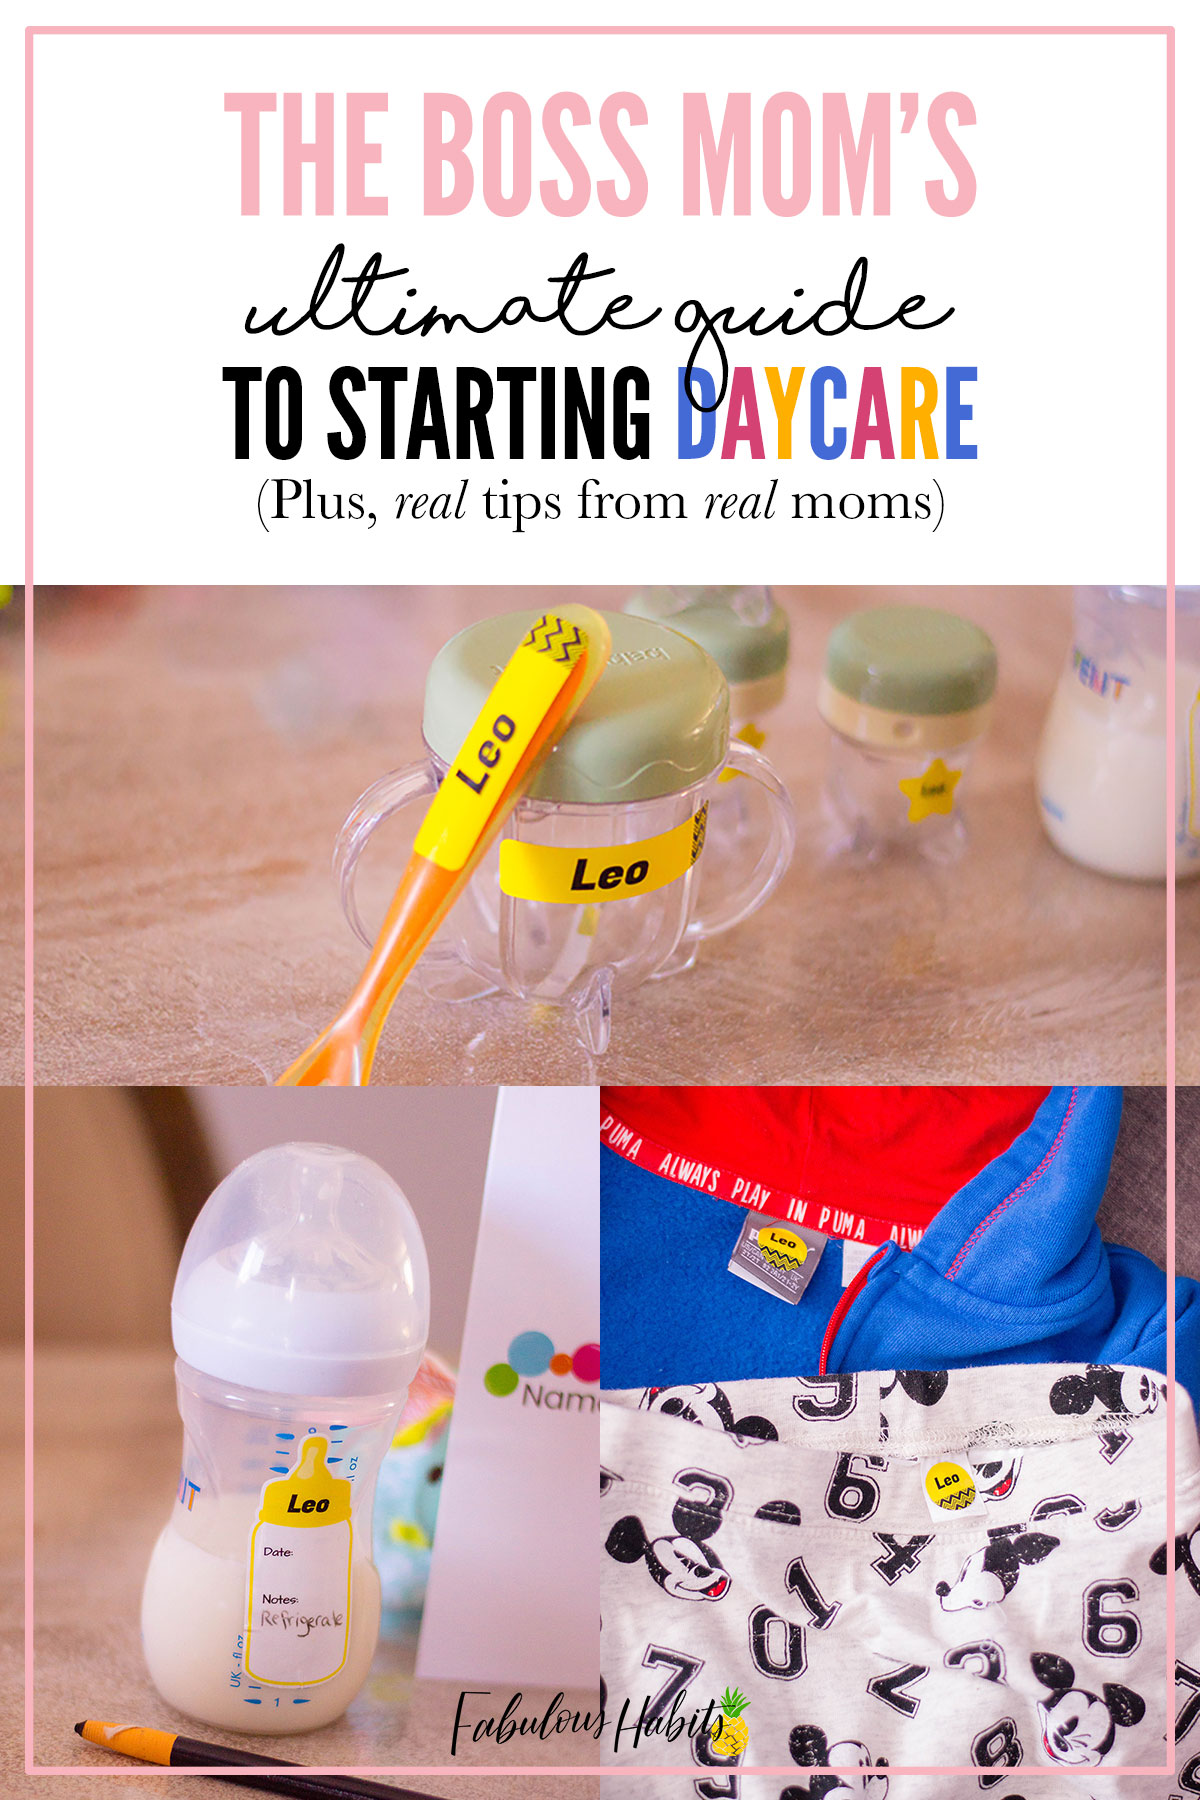 The transition to daycare doesn't have to be a scary one. We have real tips from real moms on their transition to daycare with their little ones. #preparingfordaycare